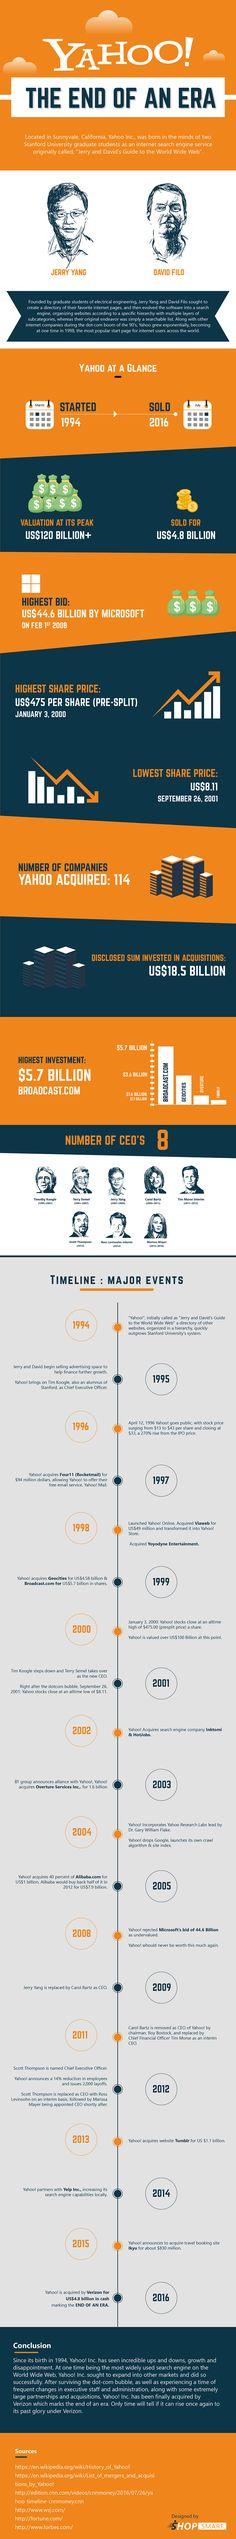 Yahoo! The End Of An Era #Infographic #History #SocialMedia